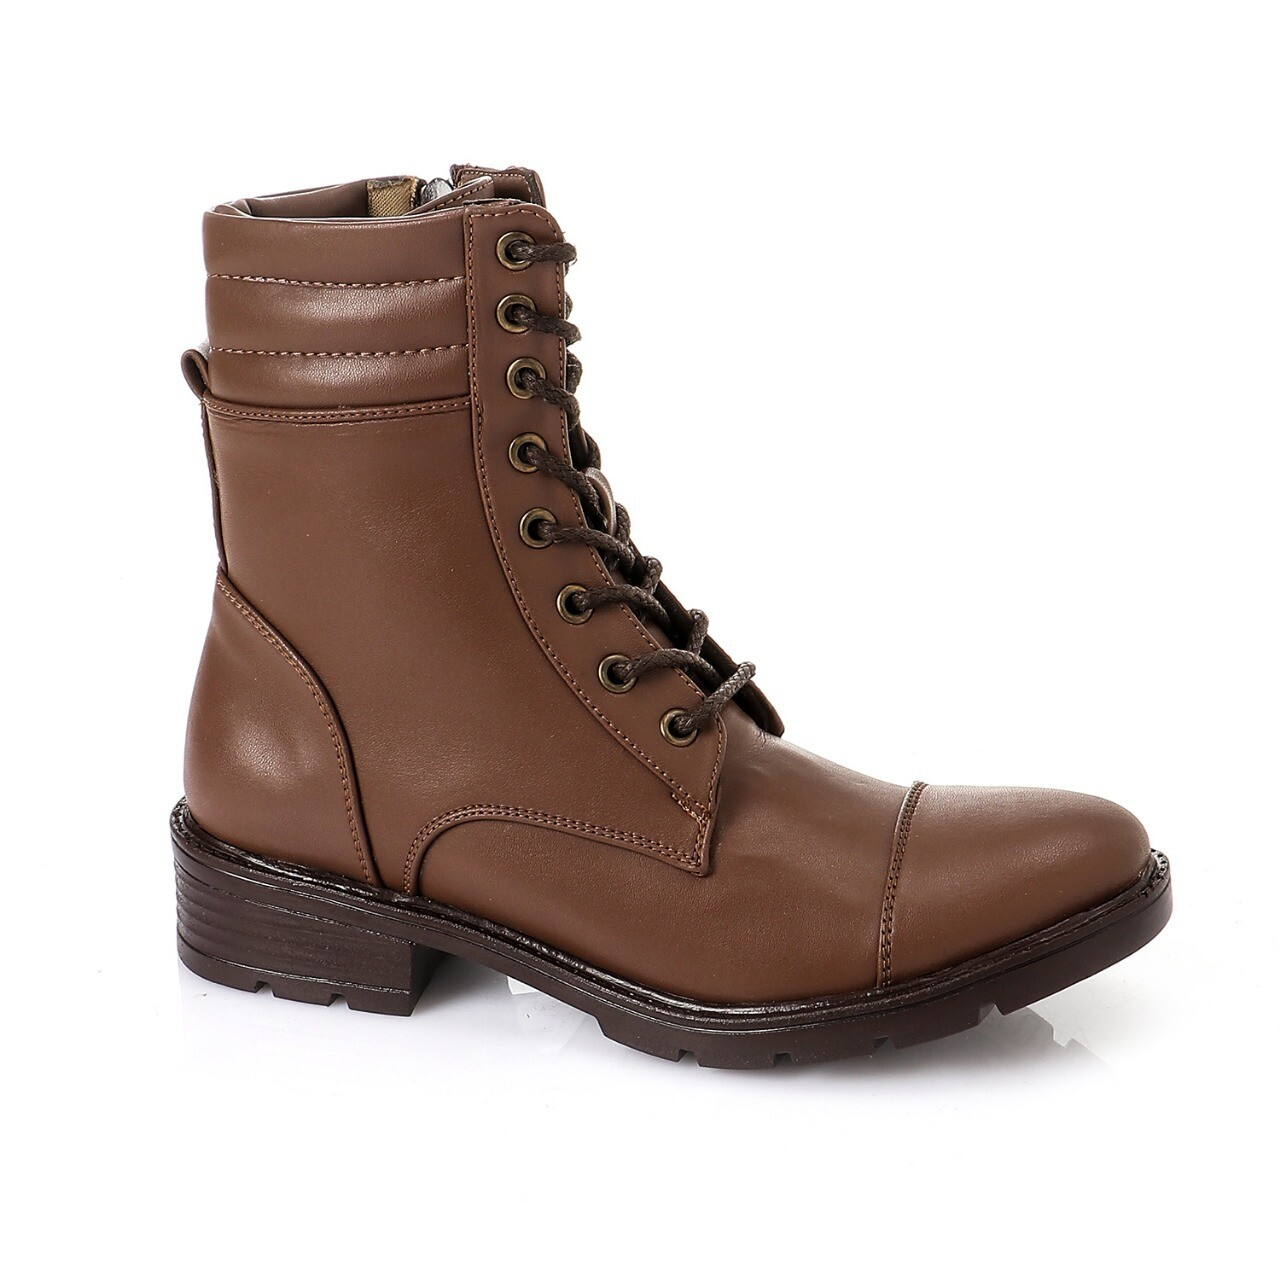 3760 Half Boot - BROWN